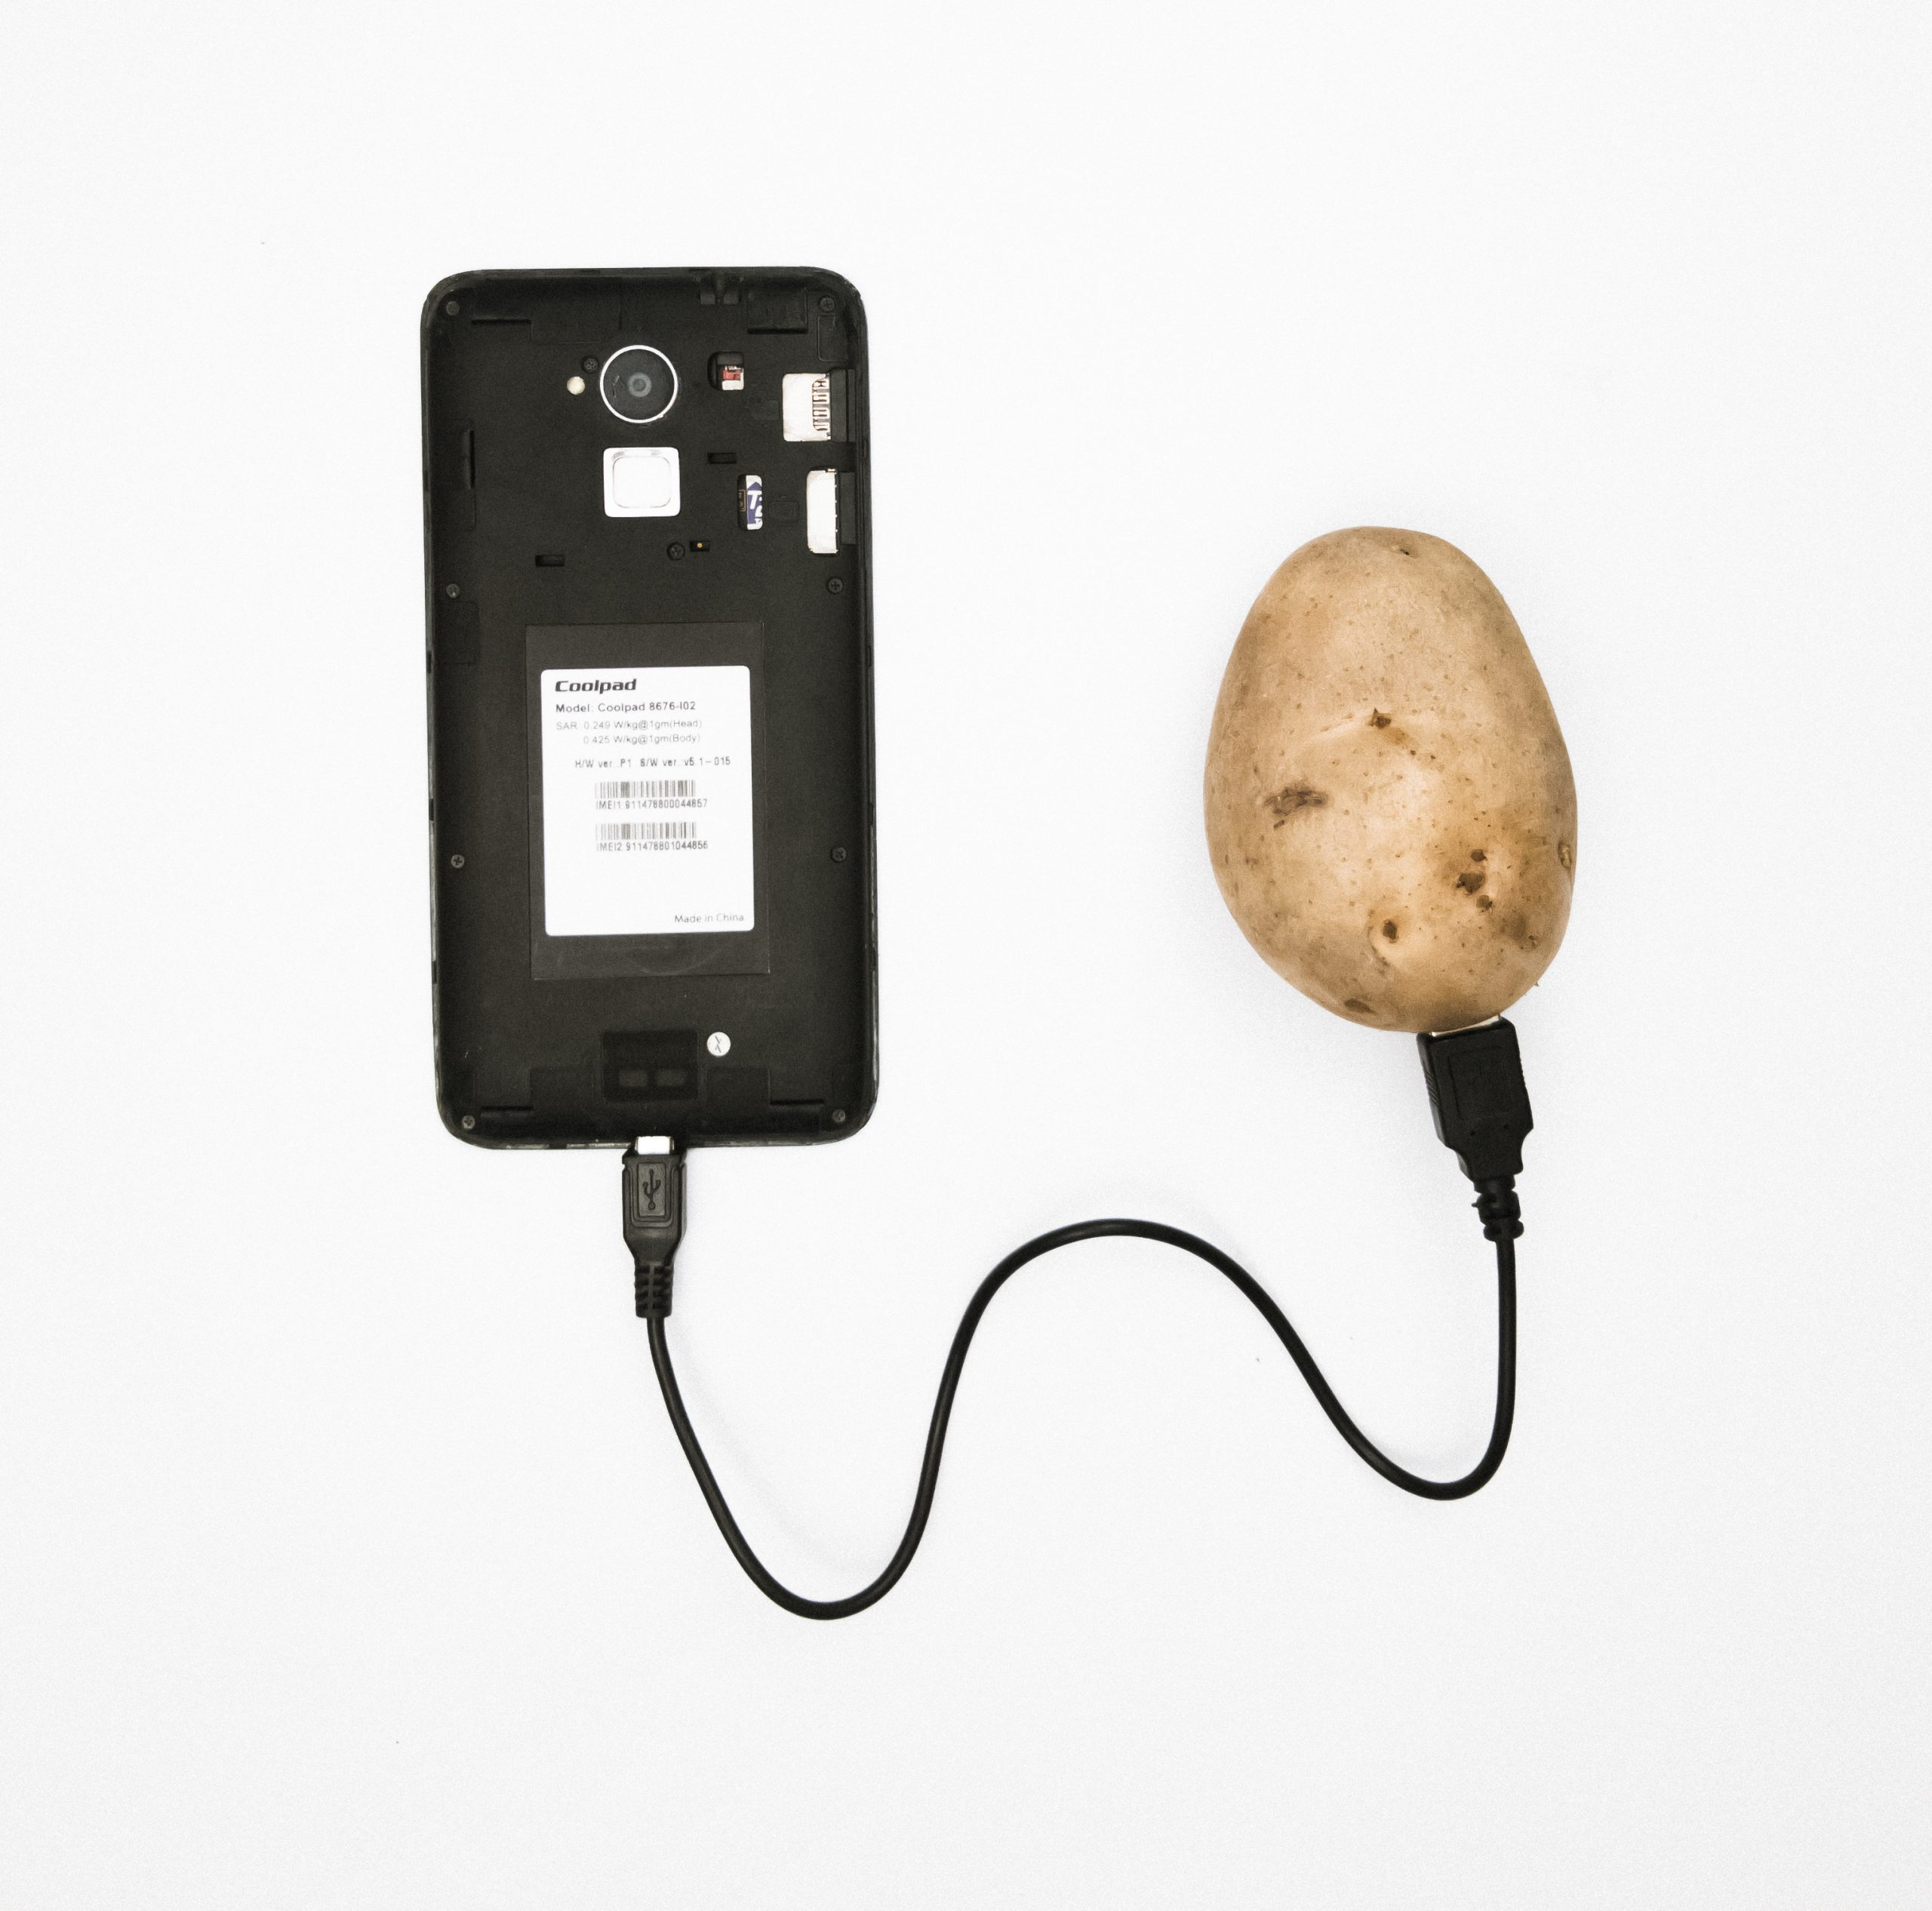 Potato, charger and cellphone